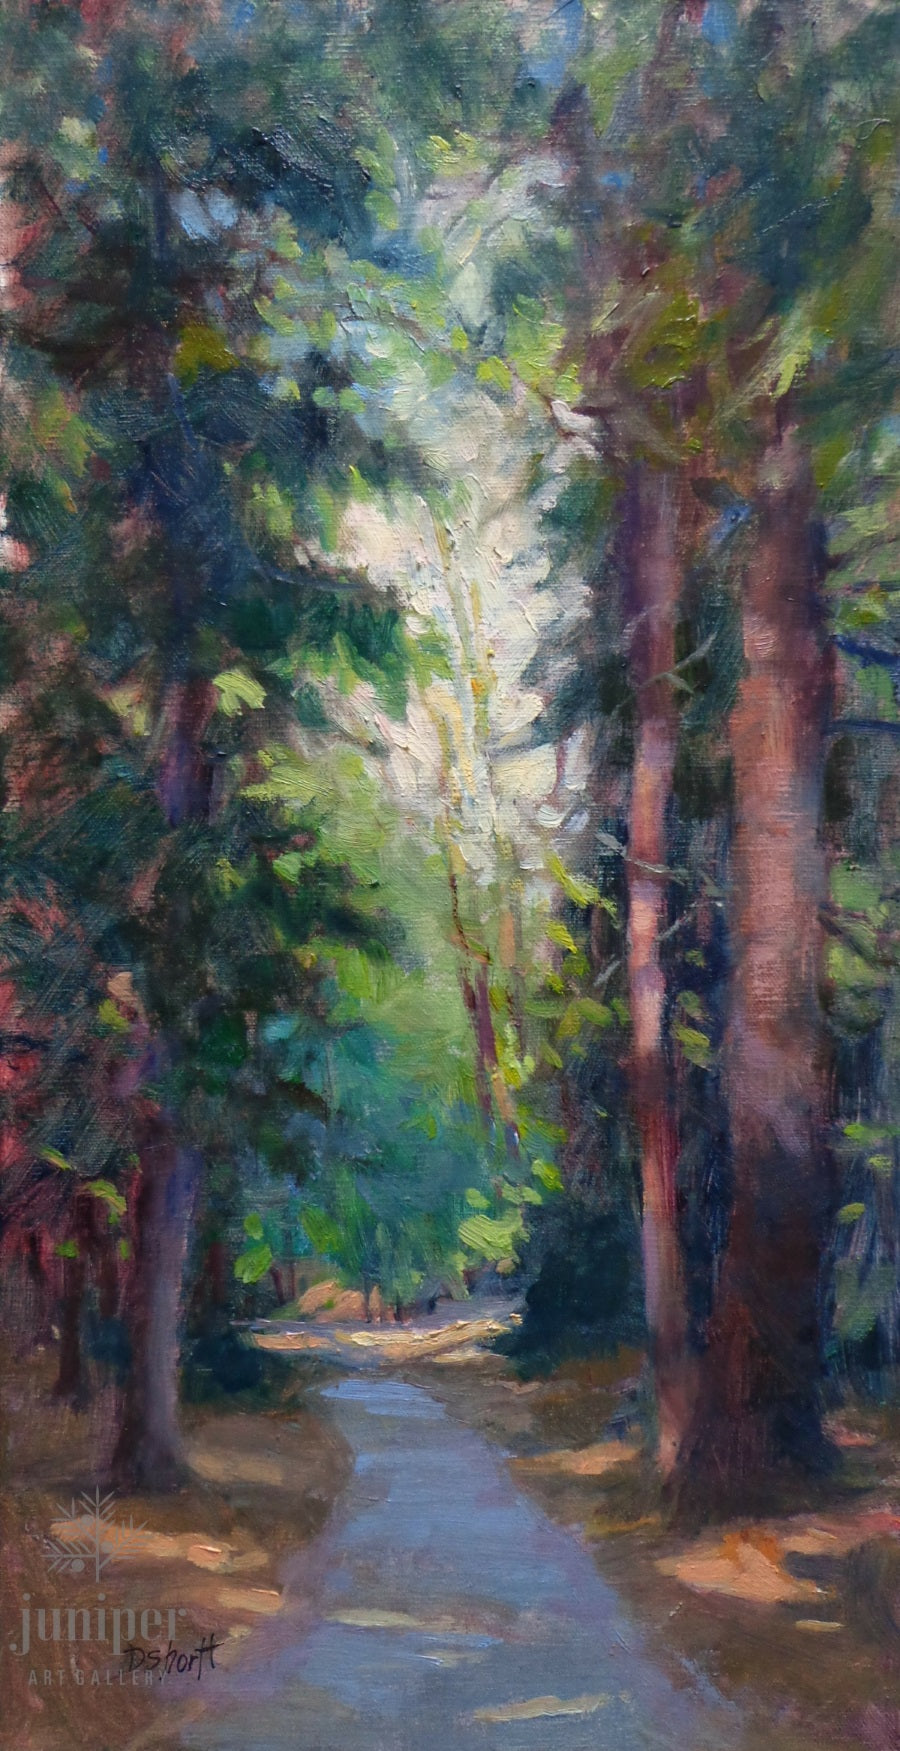 SOLD! Walk Between, oil painting by Donna Shortt